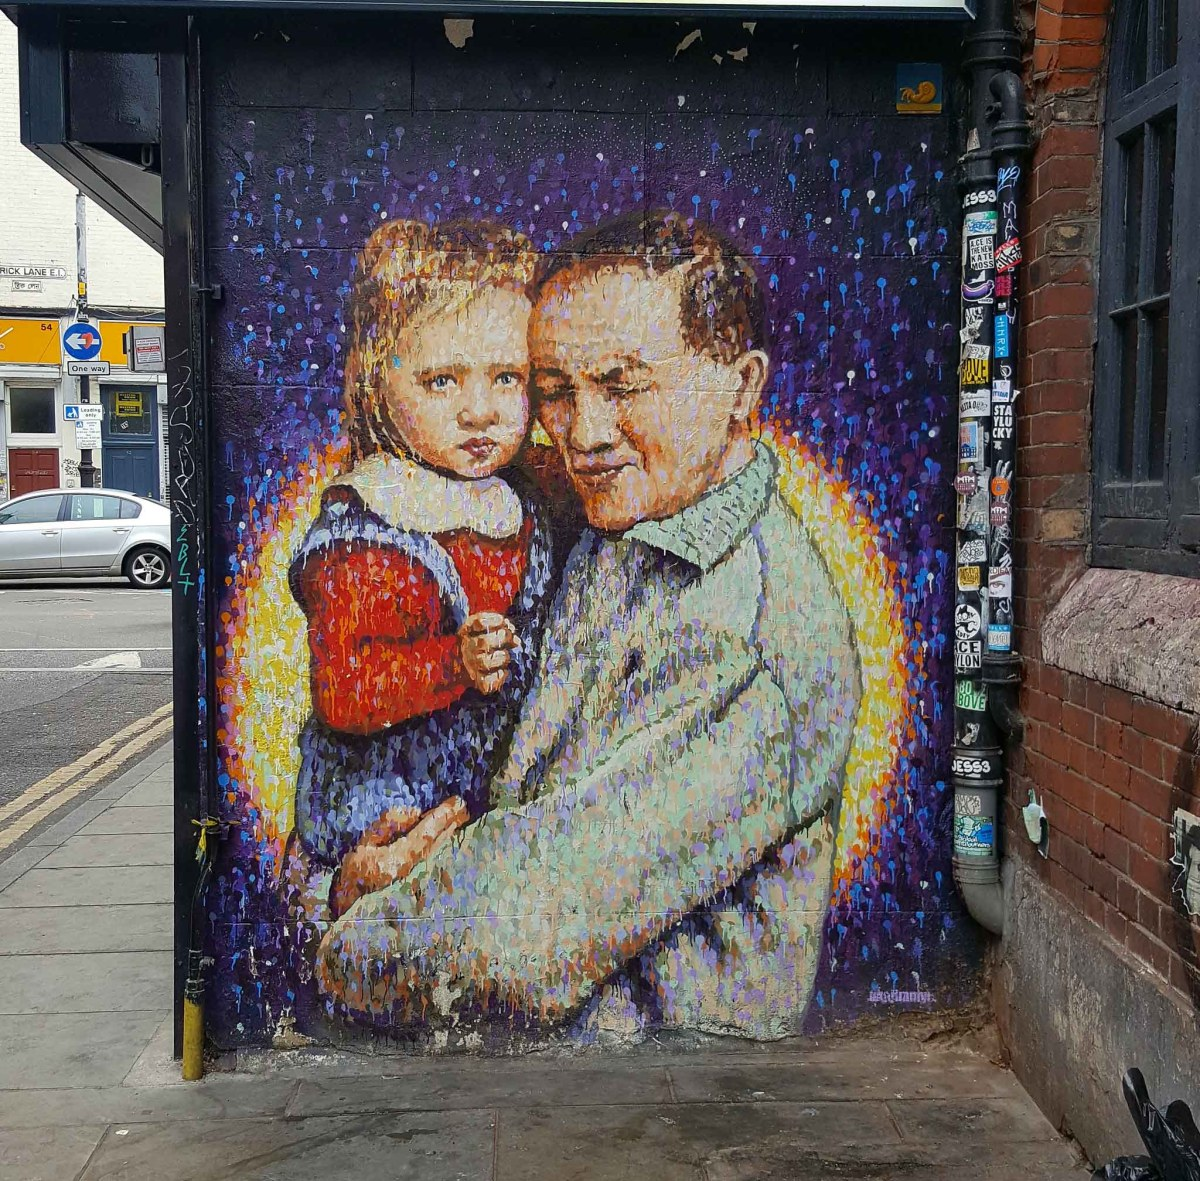 A man holding a small girl in his arms. Street Art by Jimmy C